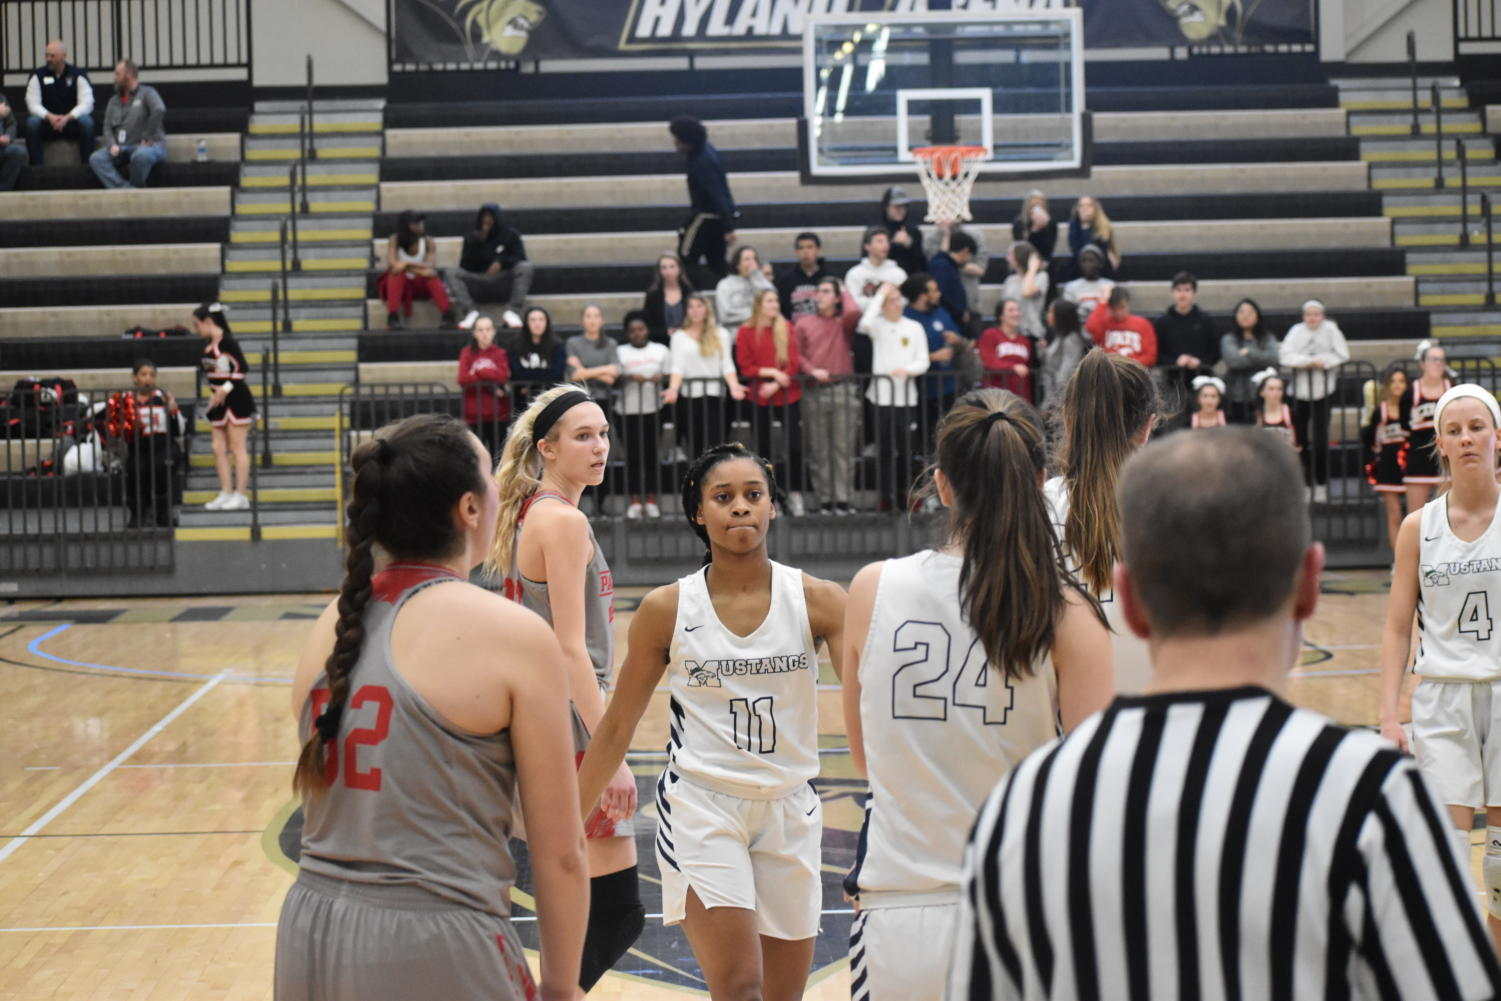 Autumn+Brown%2C+junior%2C+high+fives+her+teammates+after+scoring+a+basket+while+getting+fouled.+Brown+has+been+a+point+guard+for+the+team+since+freshman+year.+%E2%80%9CIt+feels+so+nice+to+score+because+my+teammates+are+so+supportive%2C%E2%80%9D+Brown+said.+